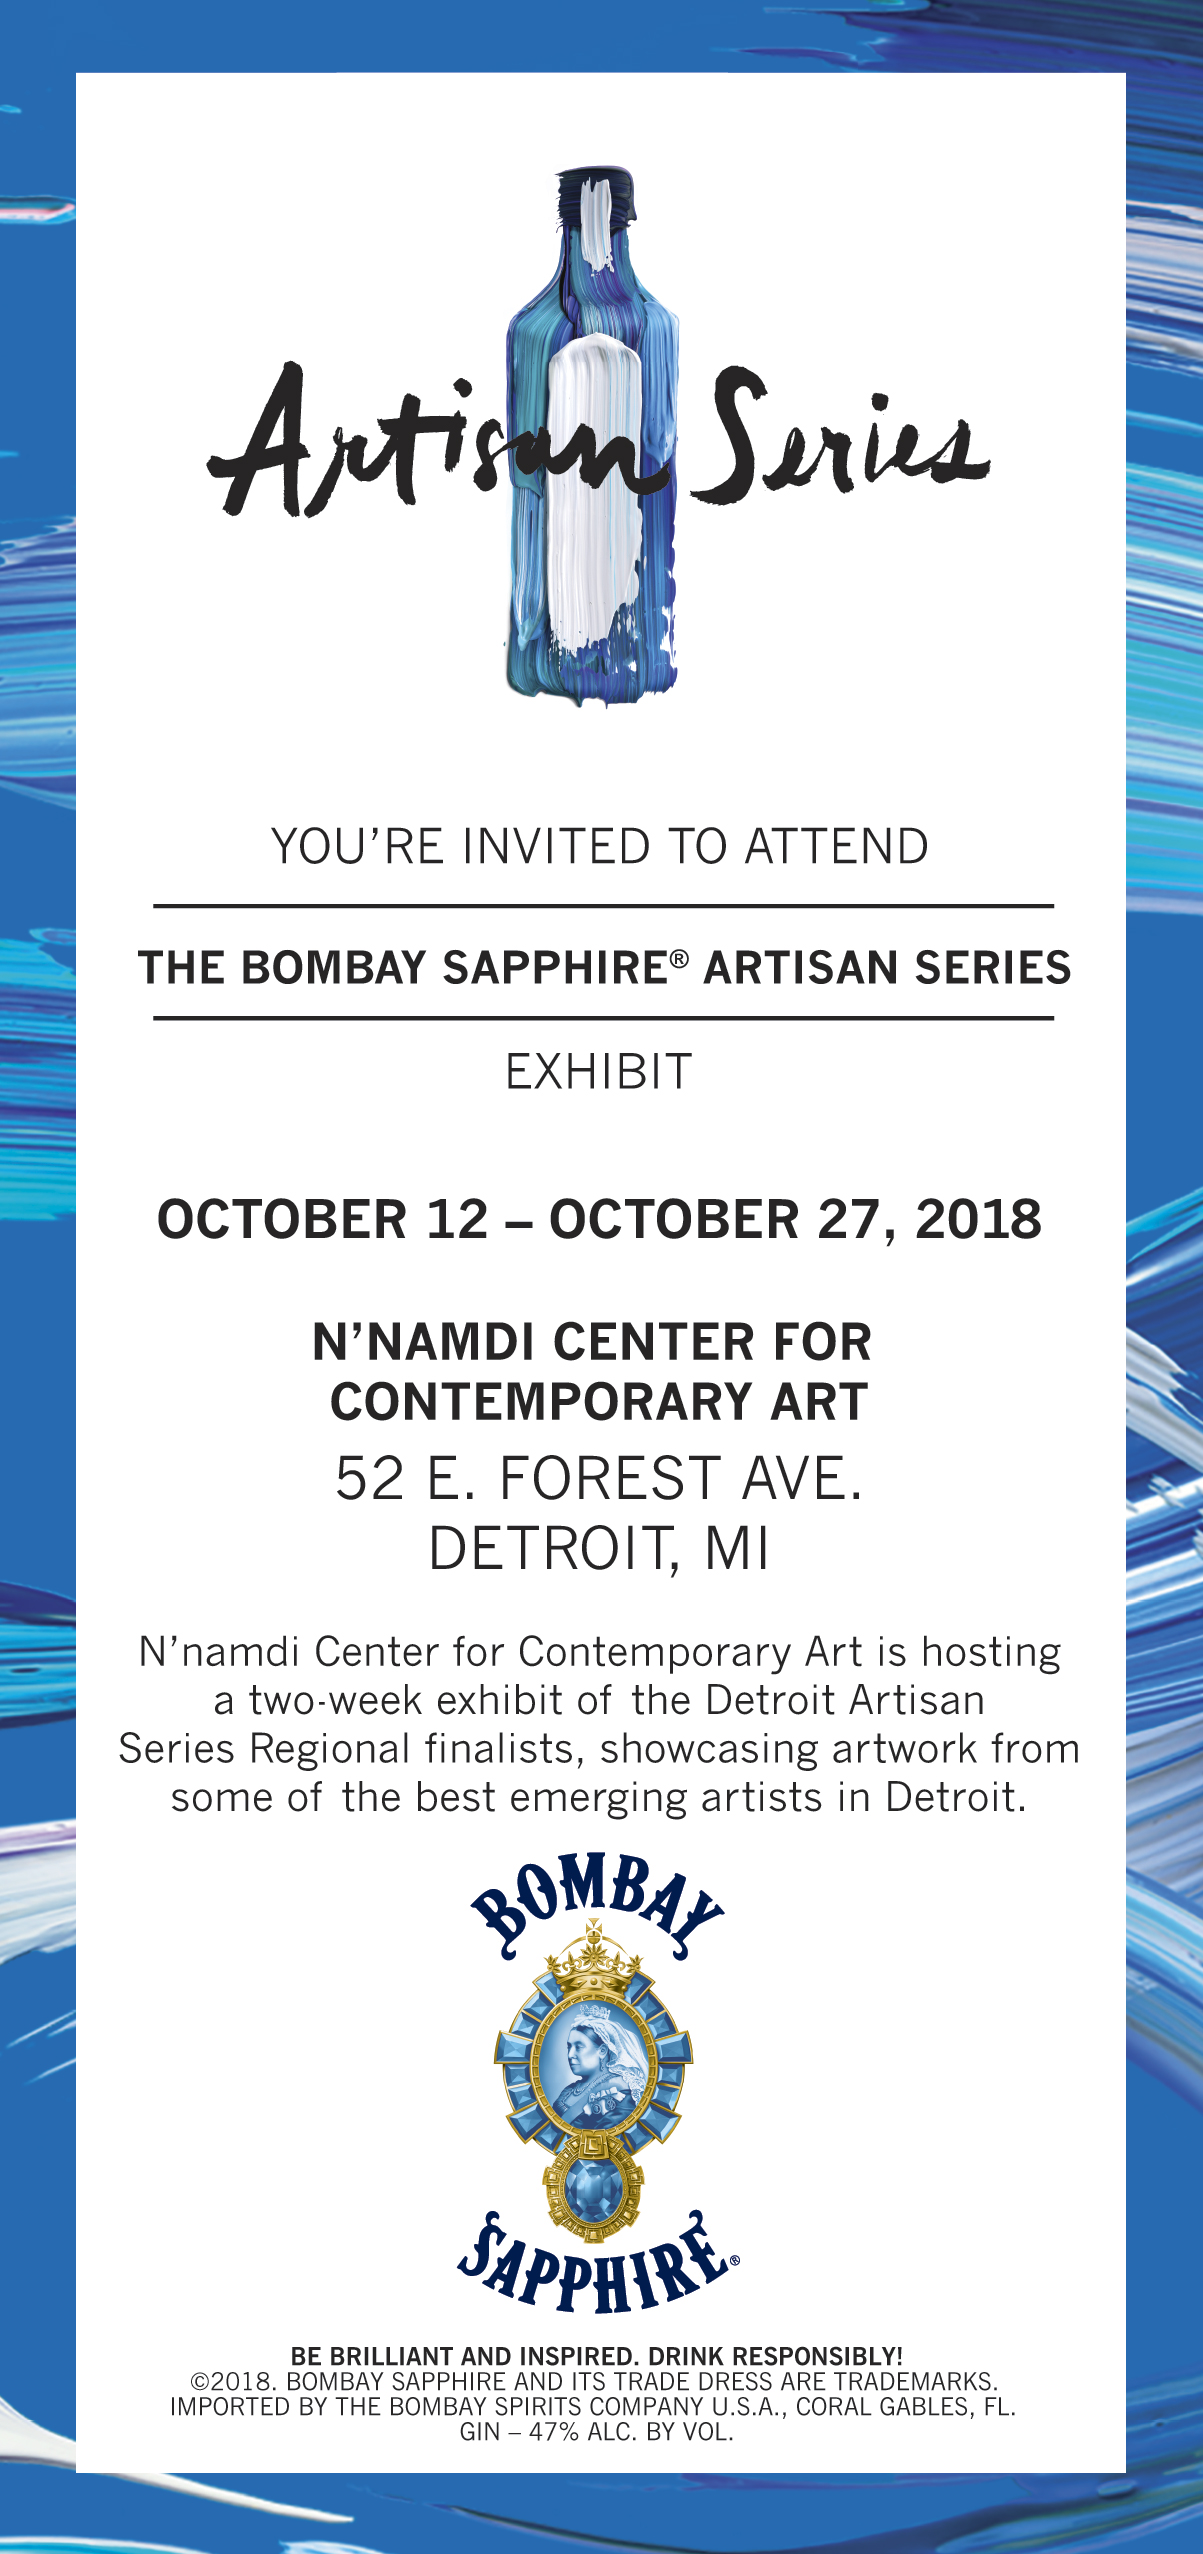 For more information on N'namdi Detroit,   click here  .  To learn more about Bombay Sapphire's Artisan Series,   click here  .